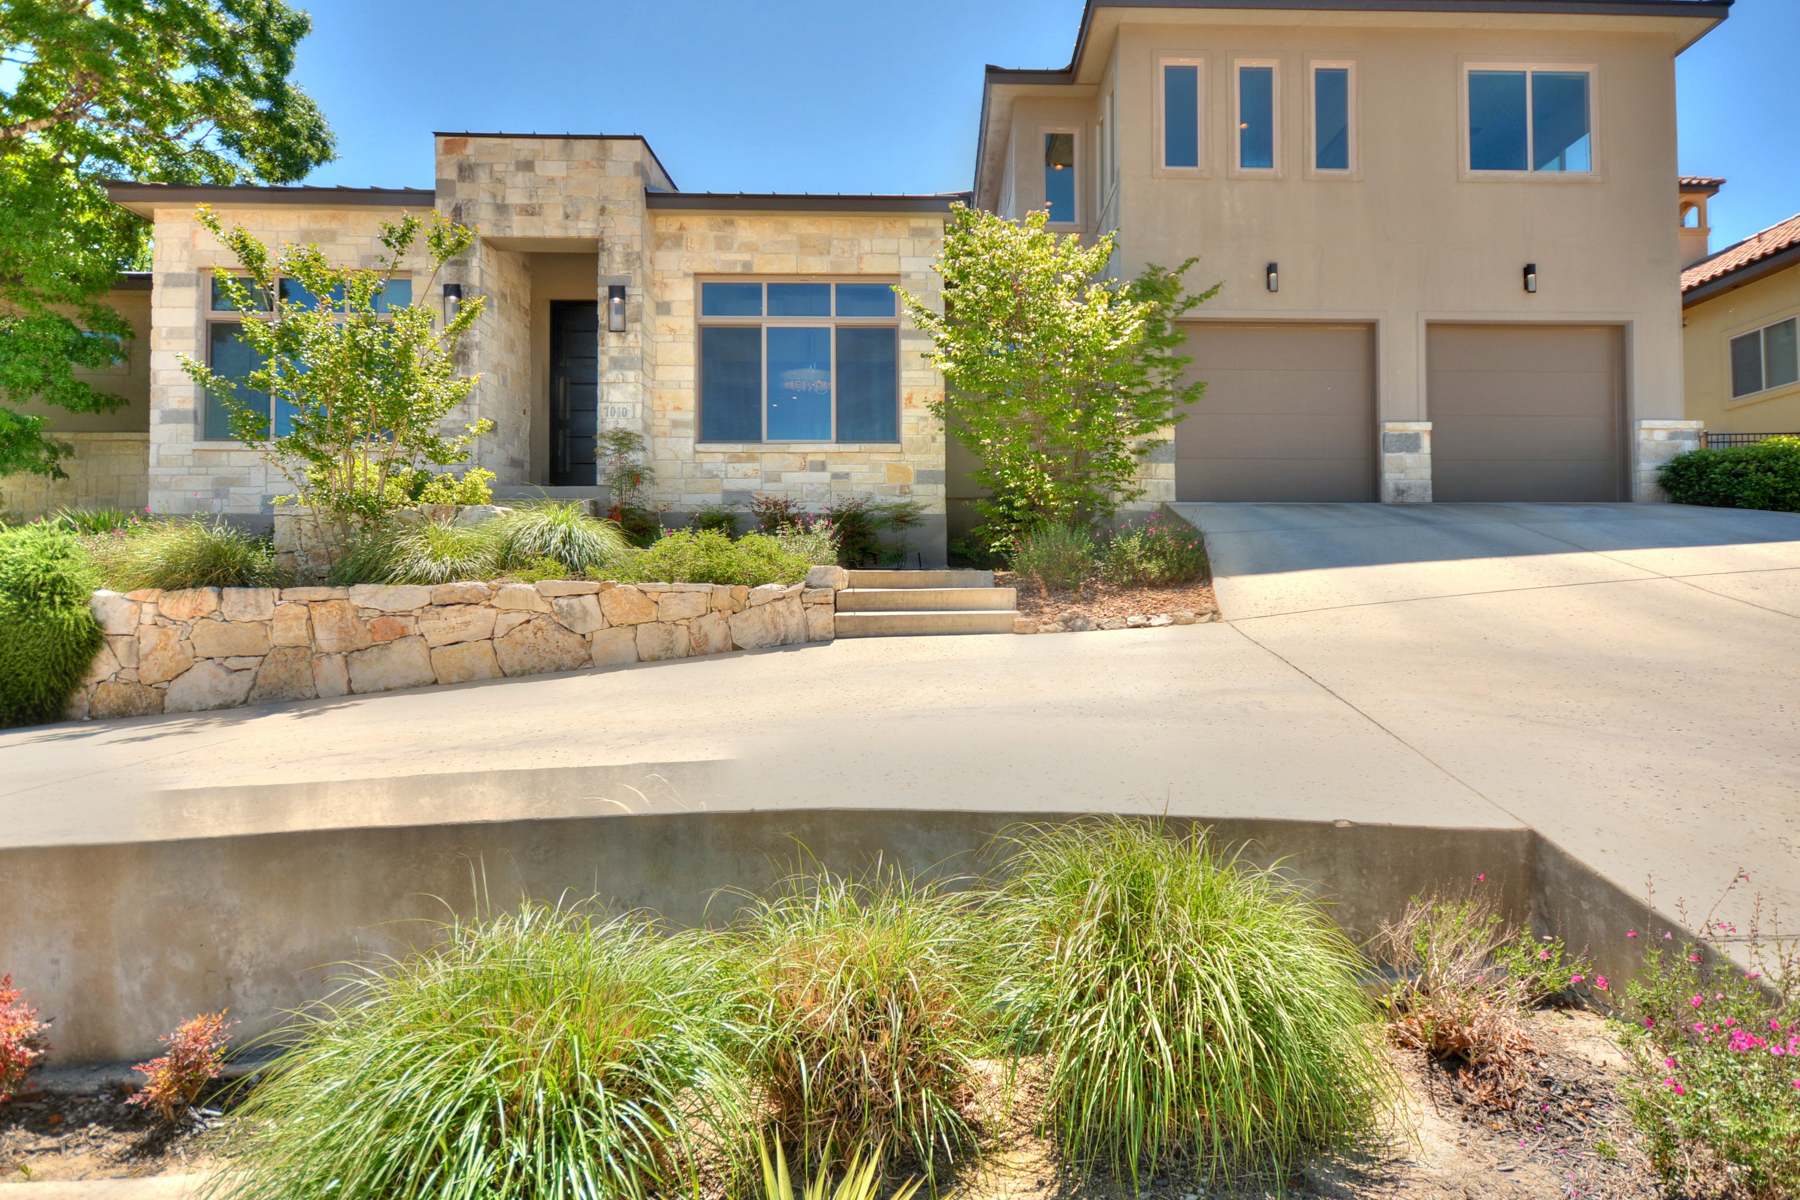 Single Family Home for Sale at Stunning and Contemporary Home in Cresta Bella 7010 Cresta Bulivar San Antonio, Texas, 78256 United States